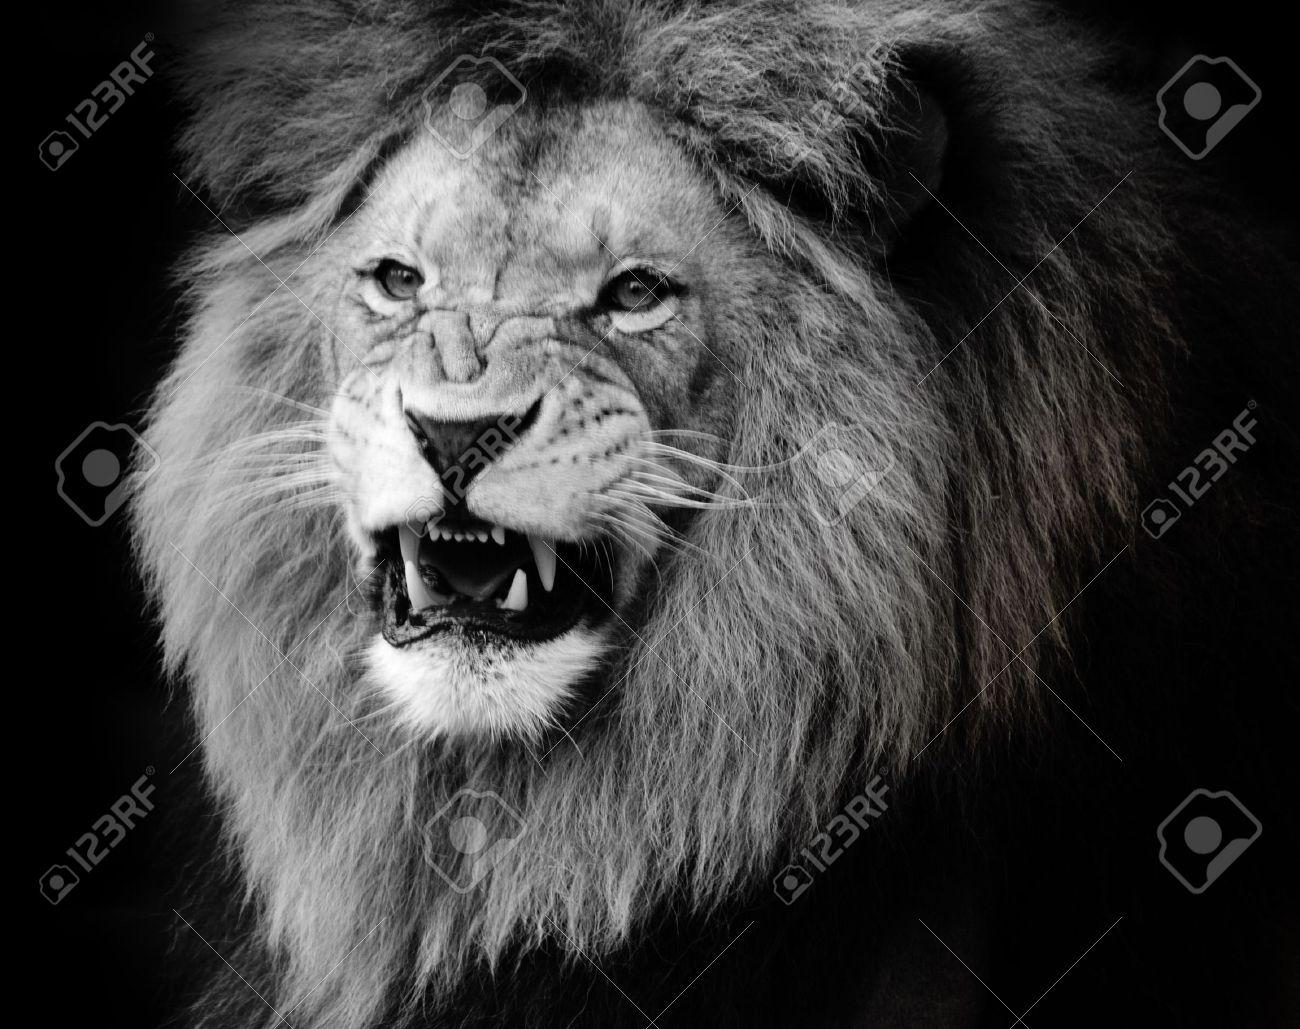 Stock photo wild lion portrait in black and white